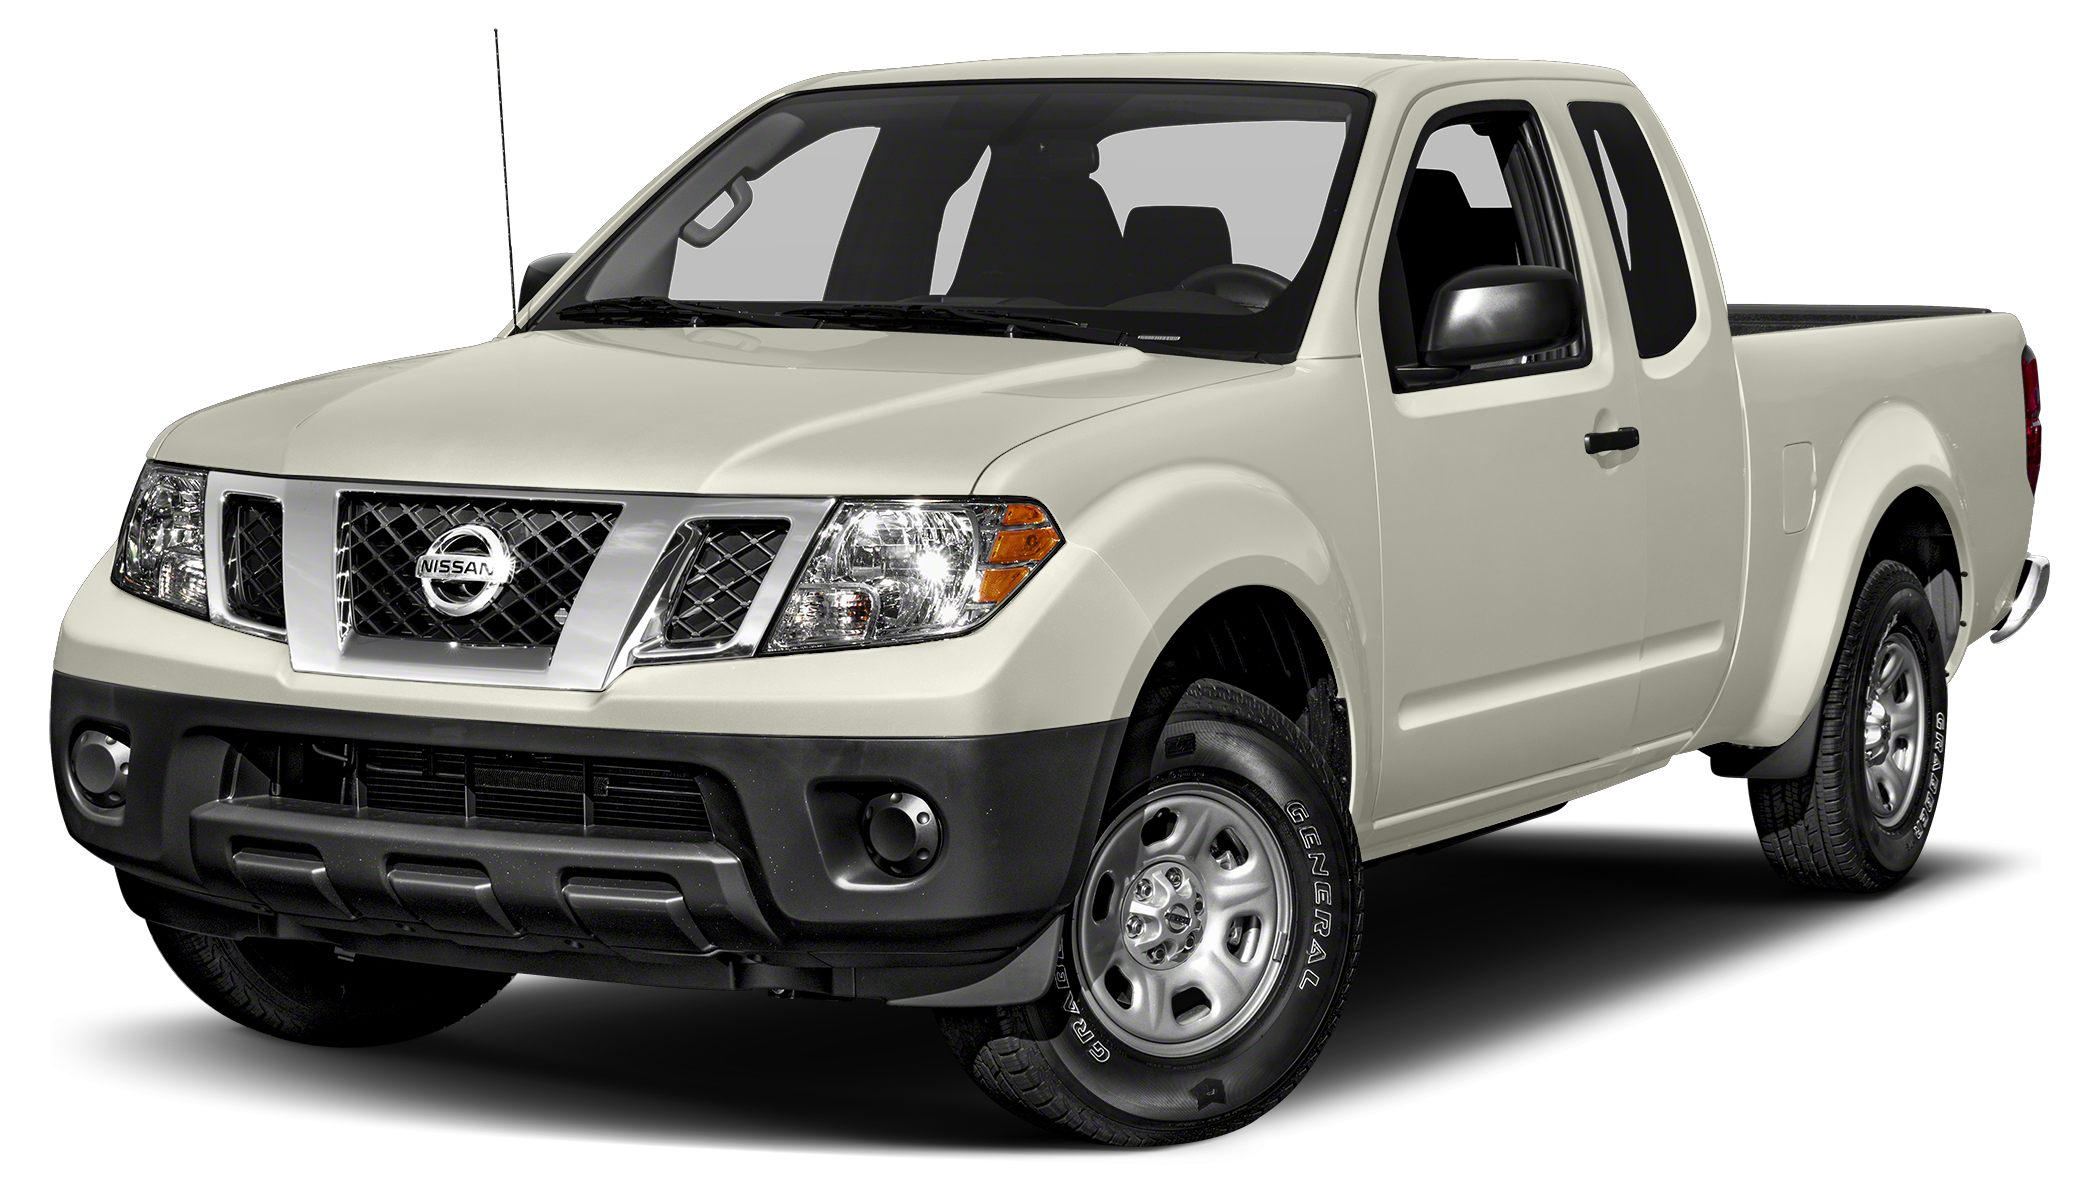 2015 Nissan Frontier S 5-Speed Automatic with Overdrive RWD Glacier White and Graphite wCloth